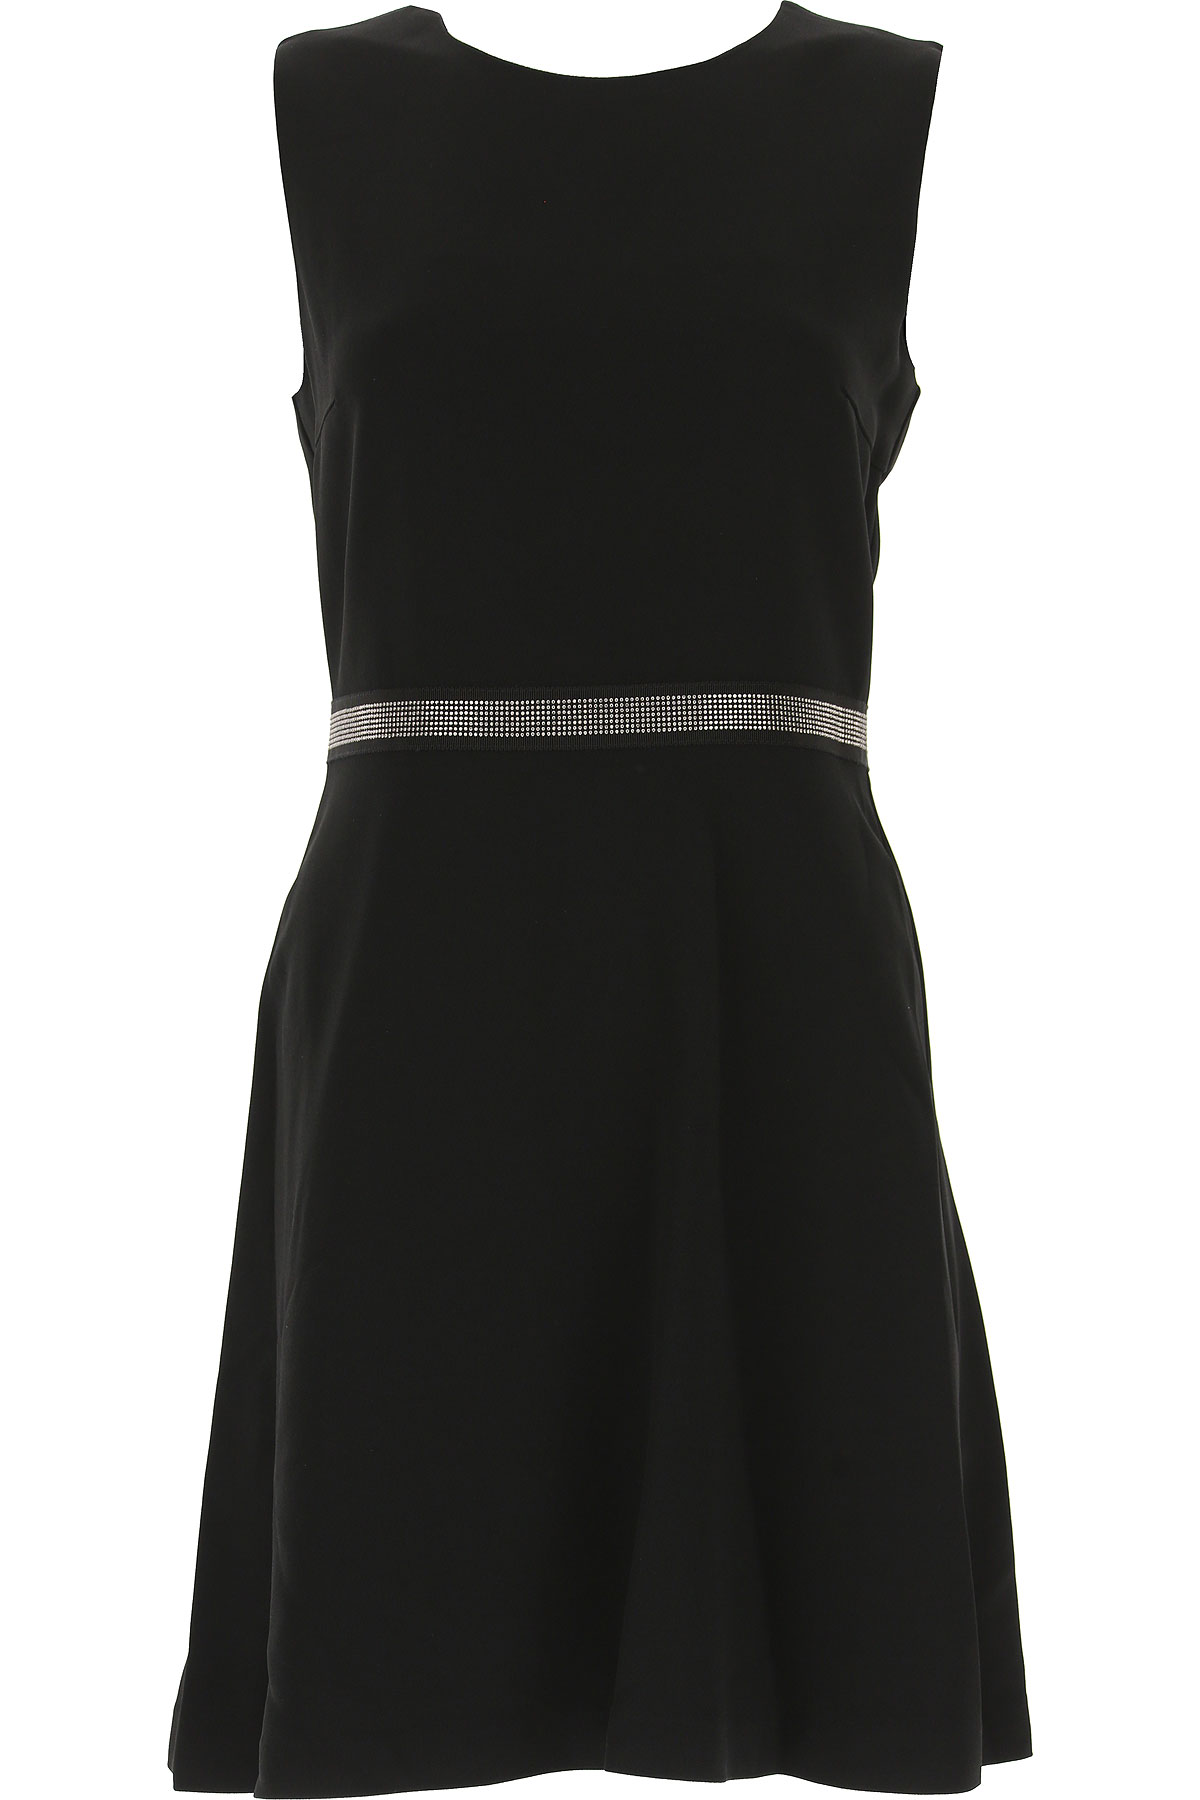 Image of Atos Lombardini Dress for Women, Evening Cocktail Party, Black, Viscose, 2017, 10 6 8